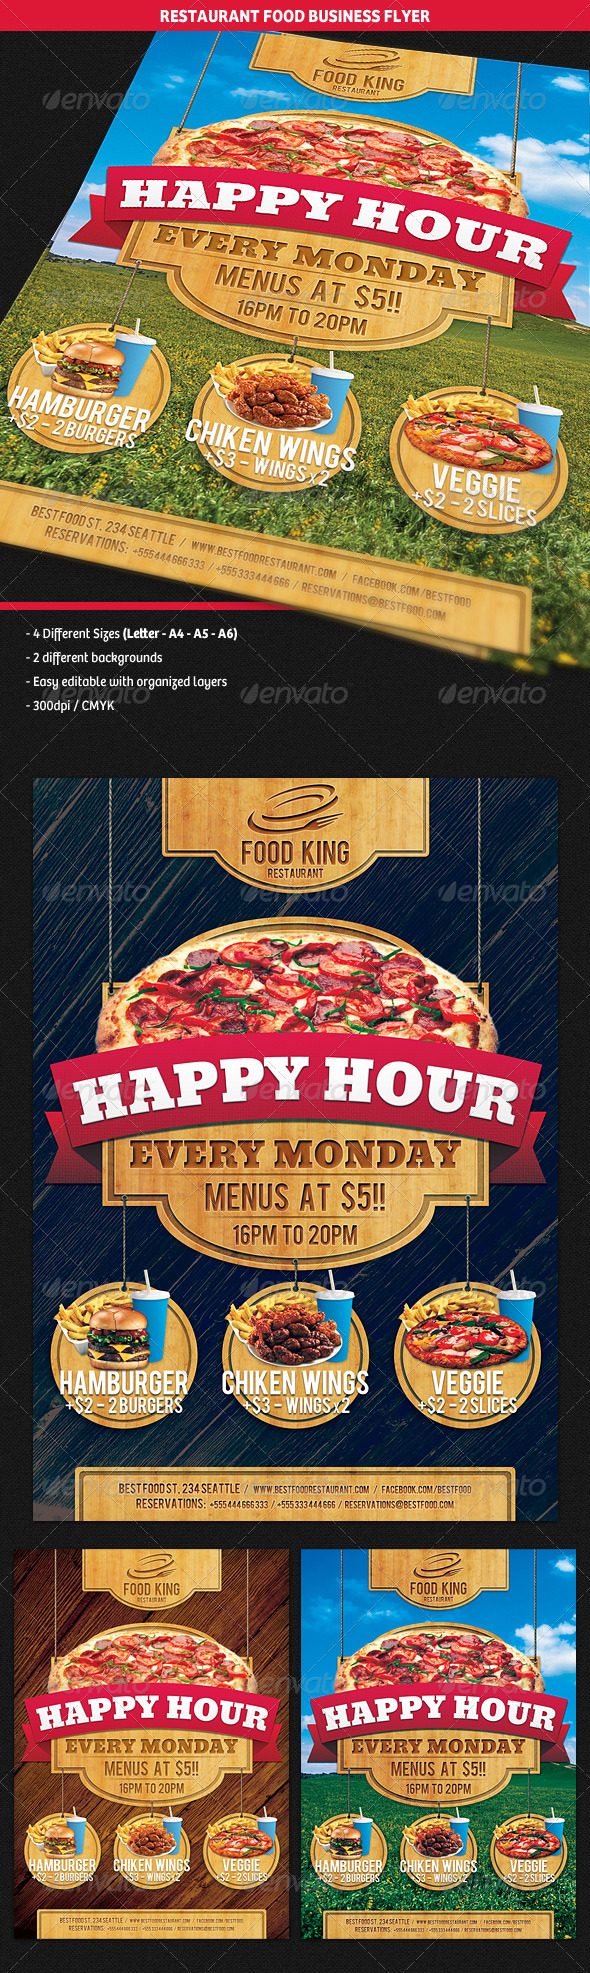 GraphicRiver Restaurant Food Promotion Flyer 4613011